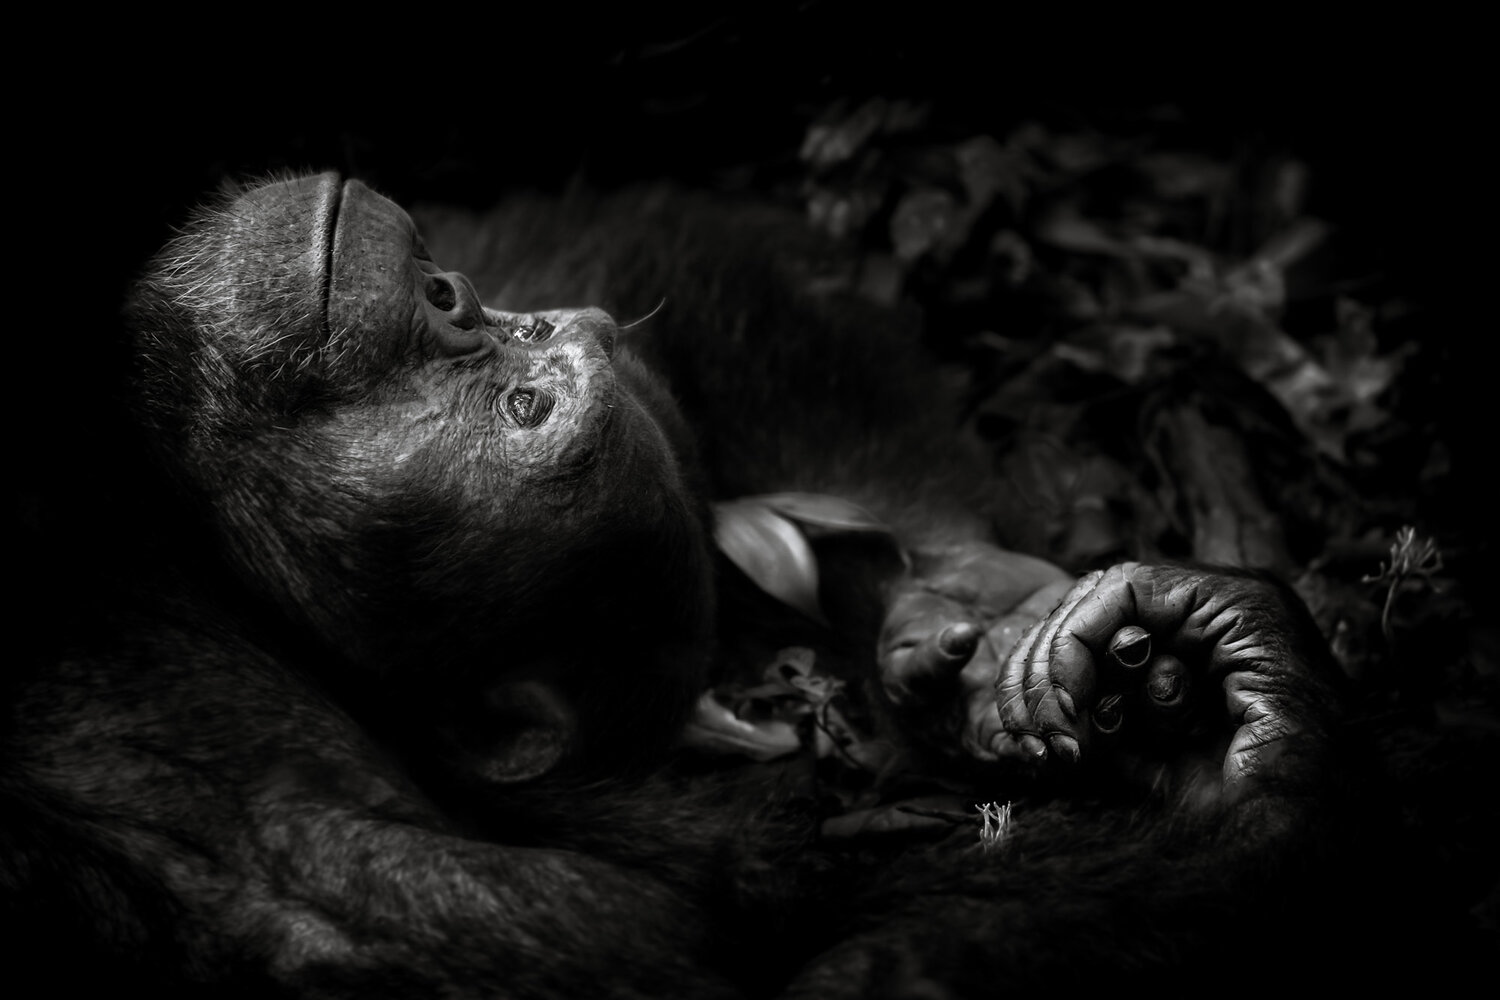 Contemplation chimpanzee wildlife art prints